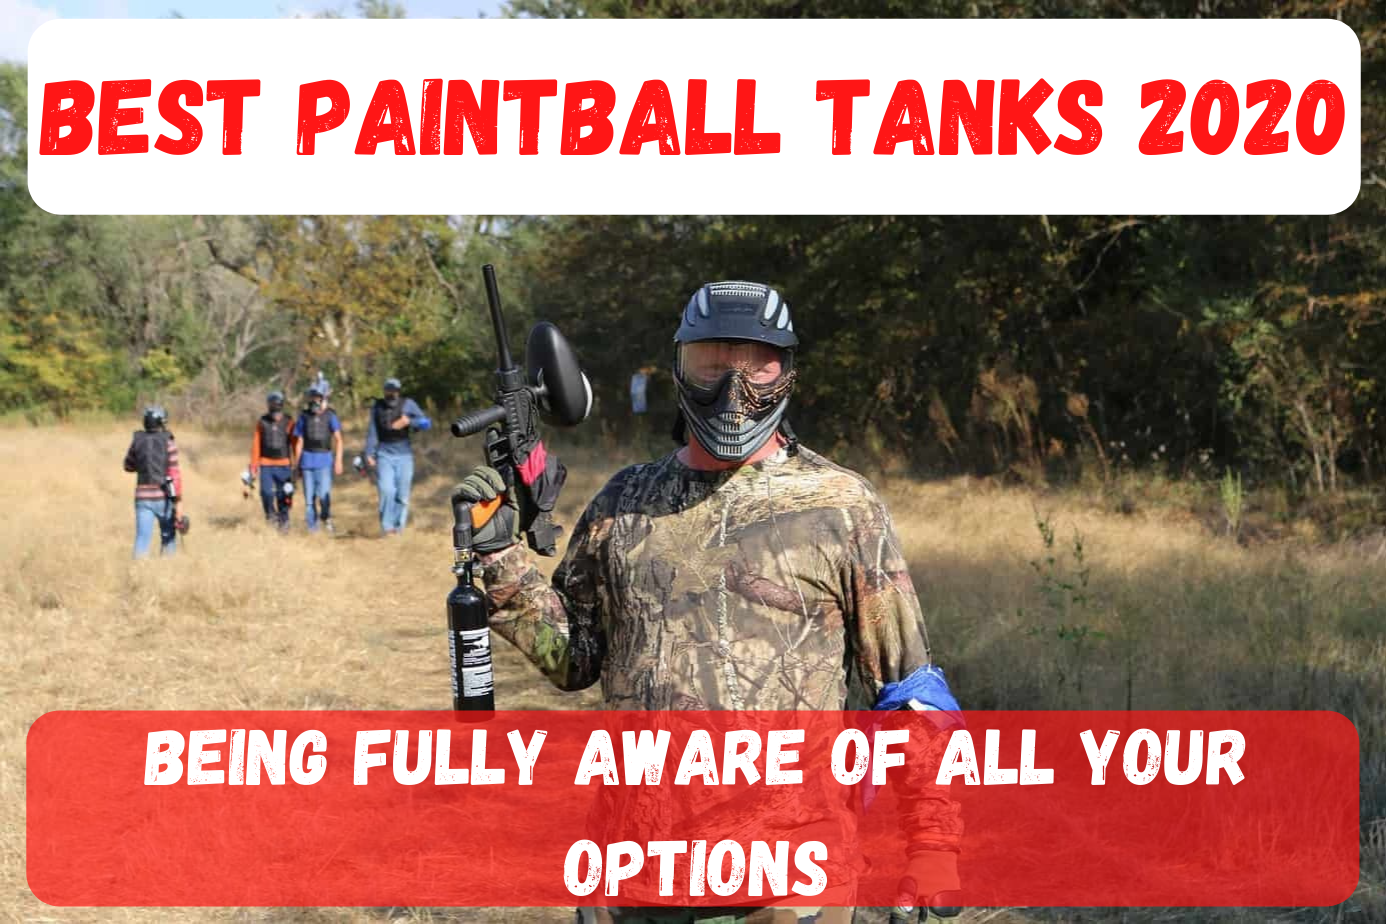 Best Paintball Tanks